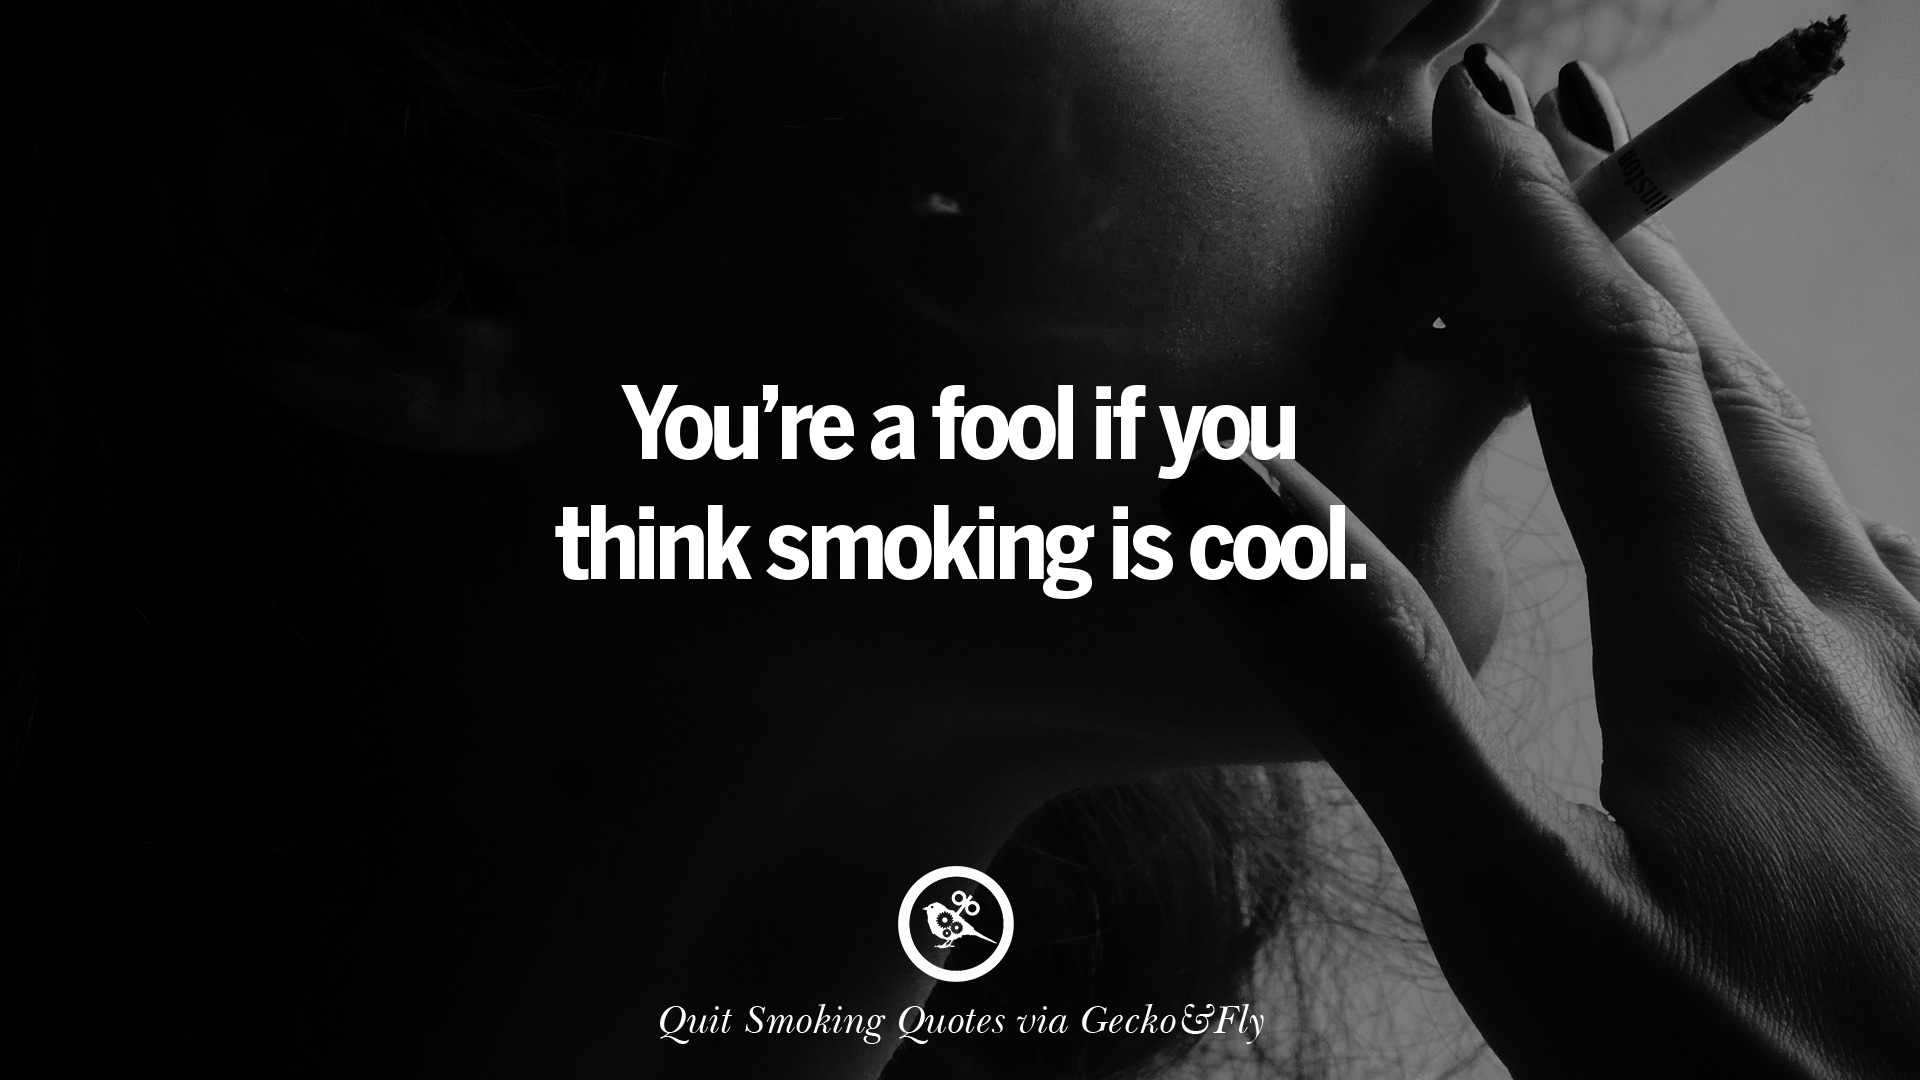 Smoking Quotes Glamorous 20 Motivational Slogans To Help You Quit Smoking And Stop Lungs